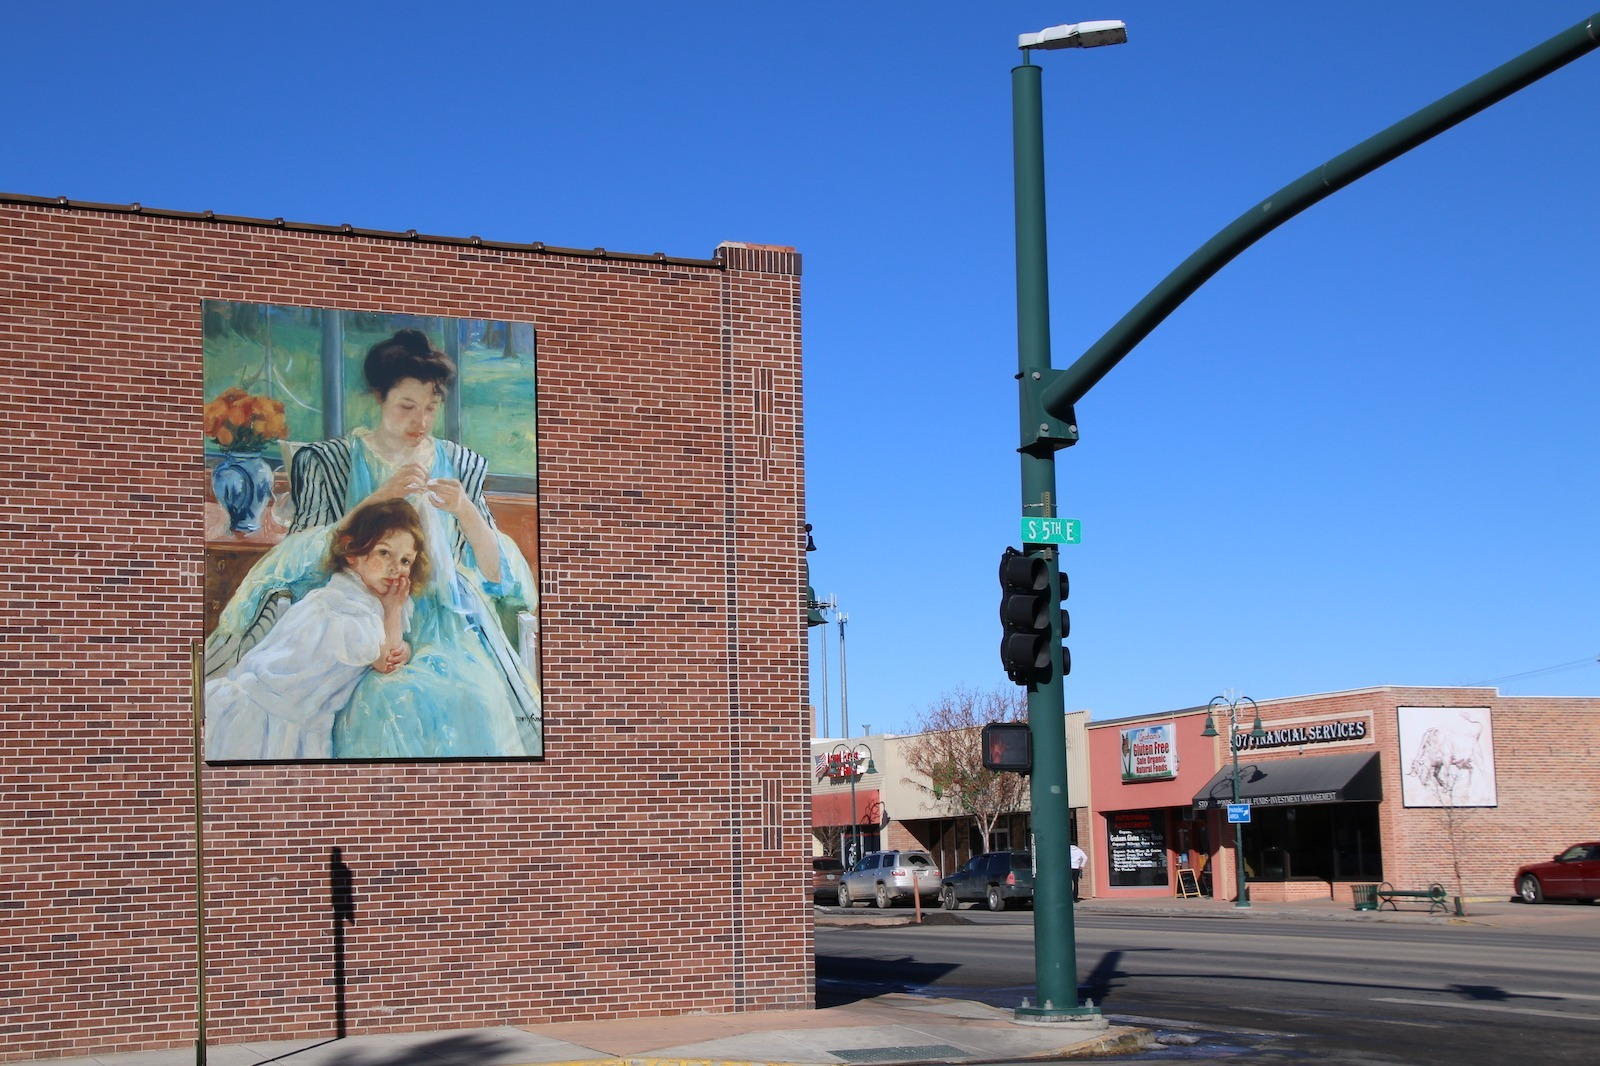 Two pieces of public art on Riverton buildings, Wyoming cultural experiences